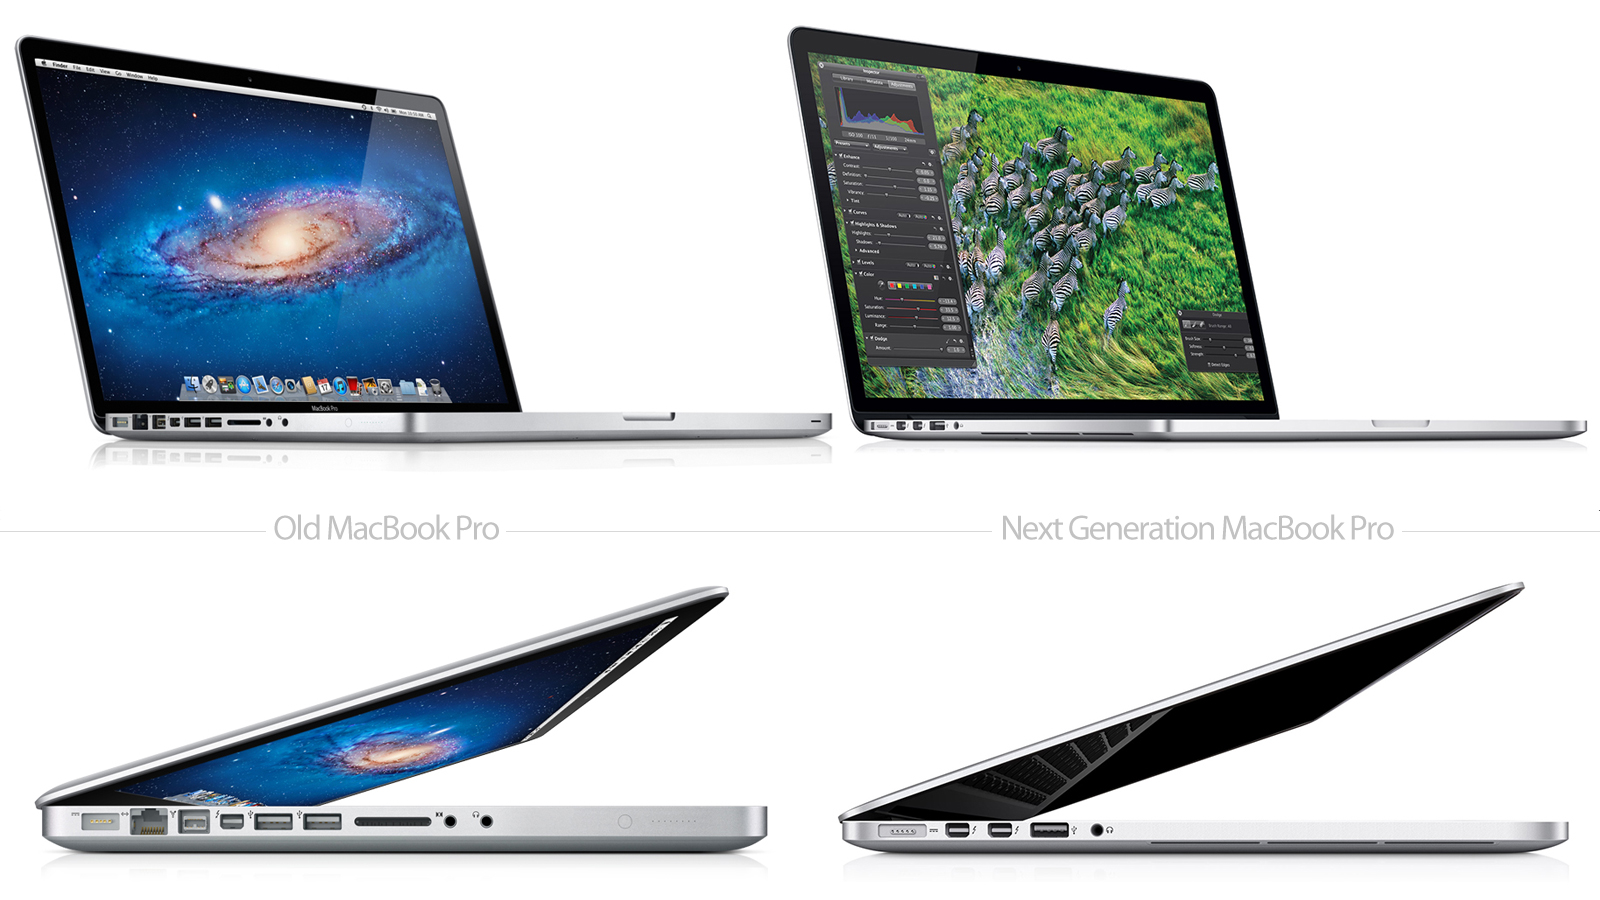 Click here to read The Old and Next Generation MacBook Pro Compared Side By Side—This Is Just Insane